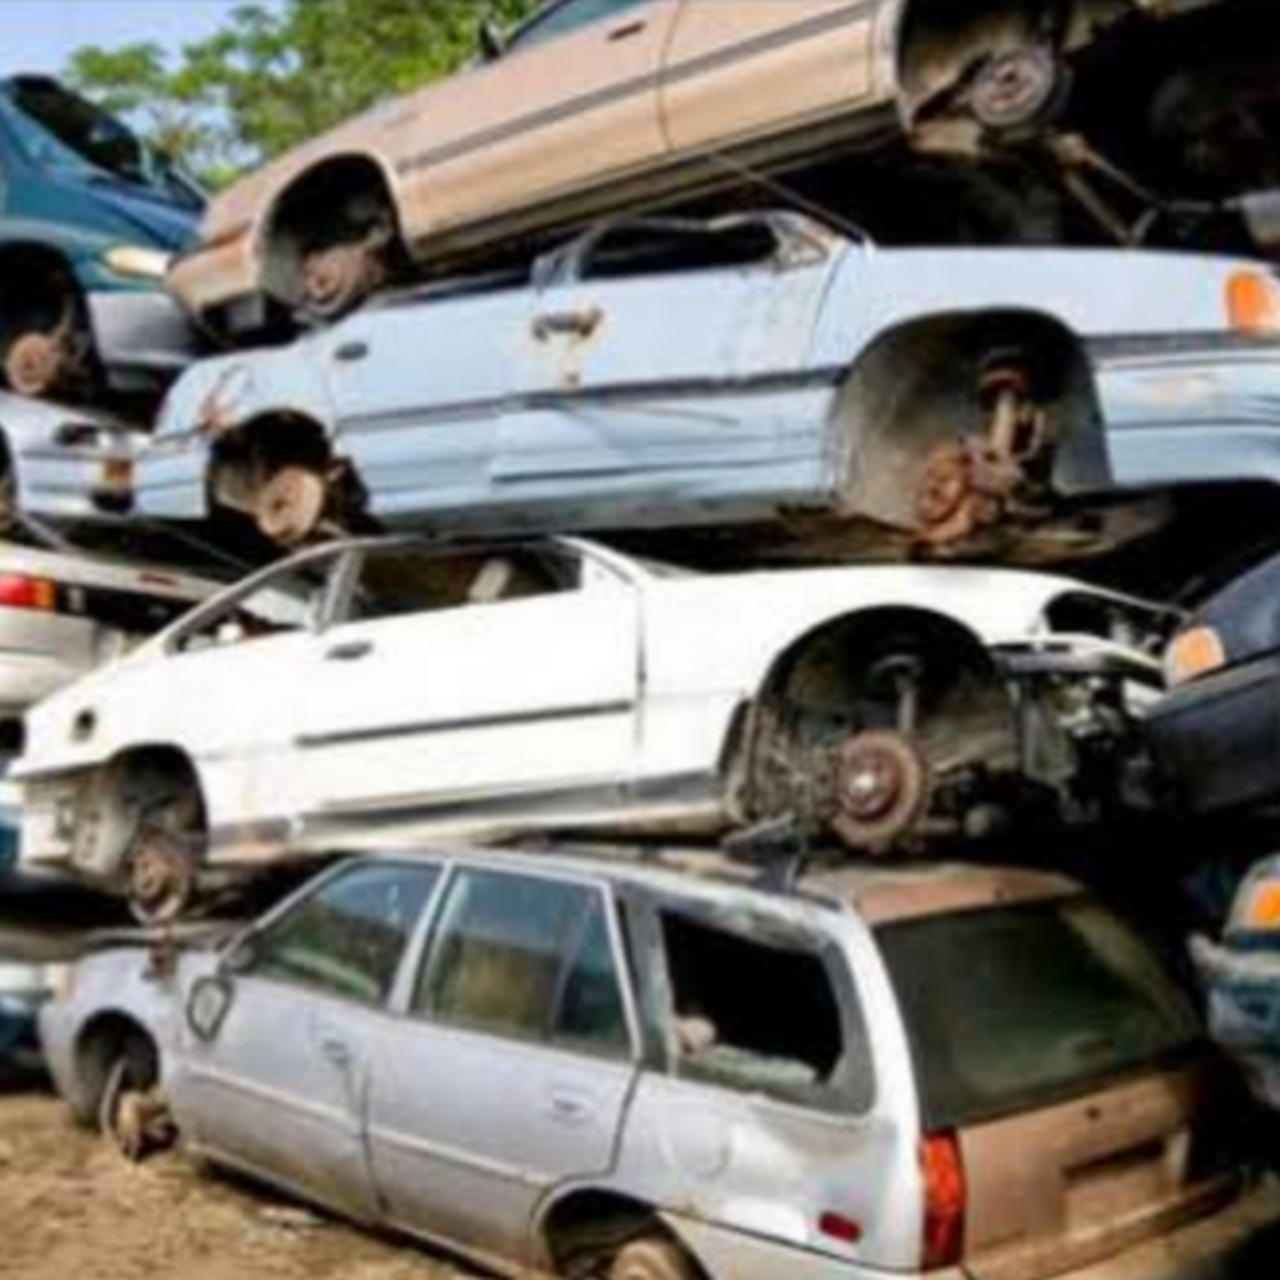 cocoa buys junk cars - Junk car buyers in Cocoa